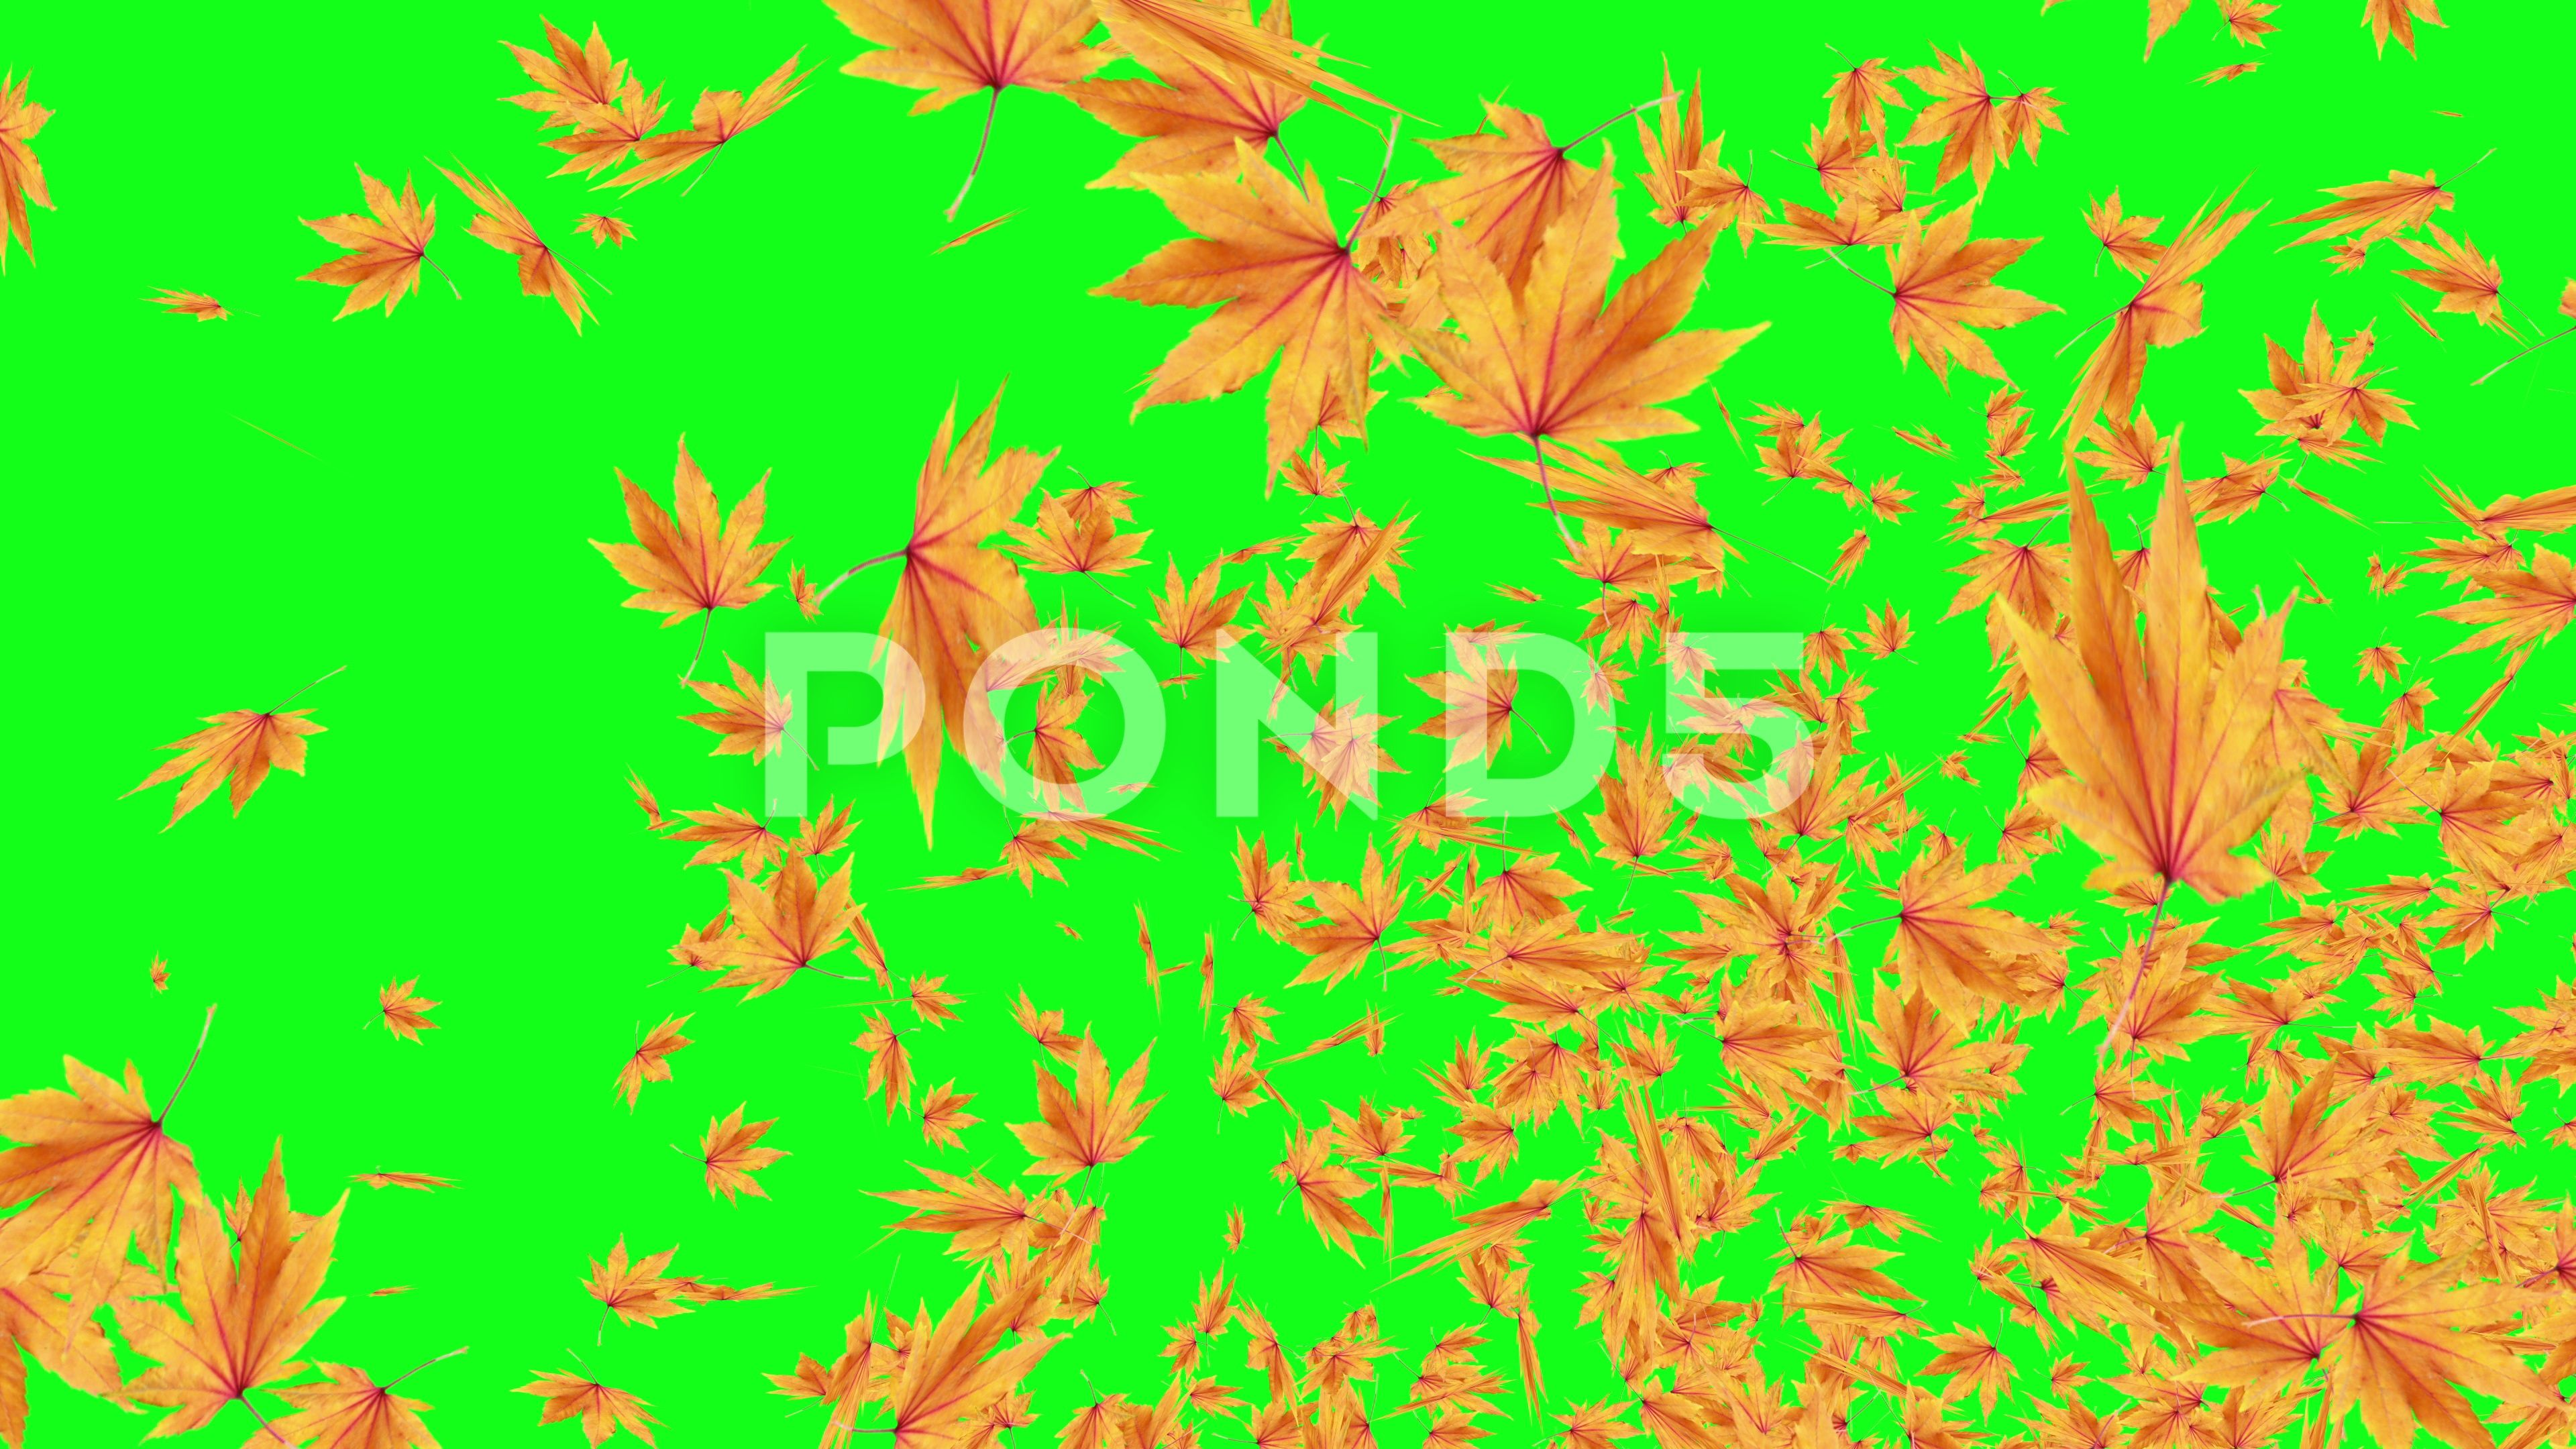 Explosive Autumn Falling Leaves Green Screen Chroma Key Editable Background Stock Footage Ad Leaves Green Screen Expl Greenscreen Chroma Key Autumn Leaves